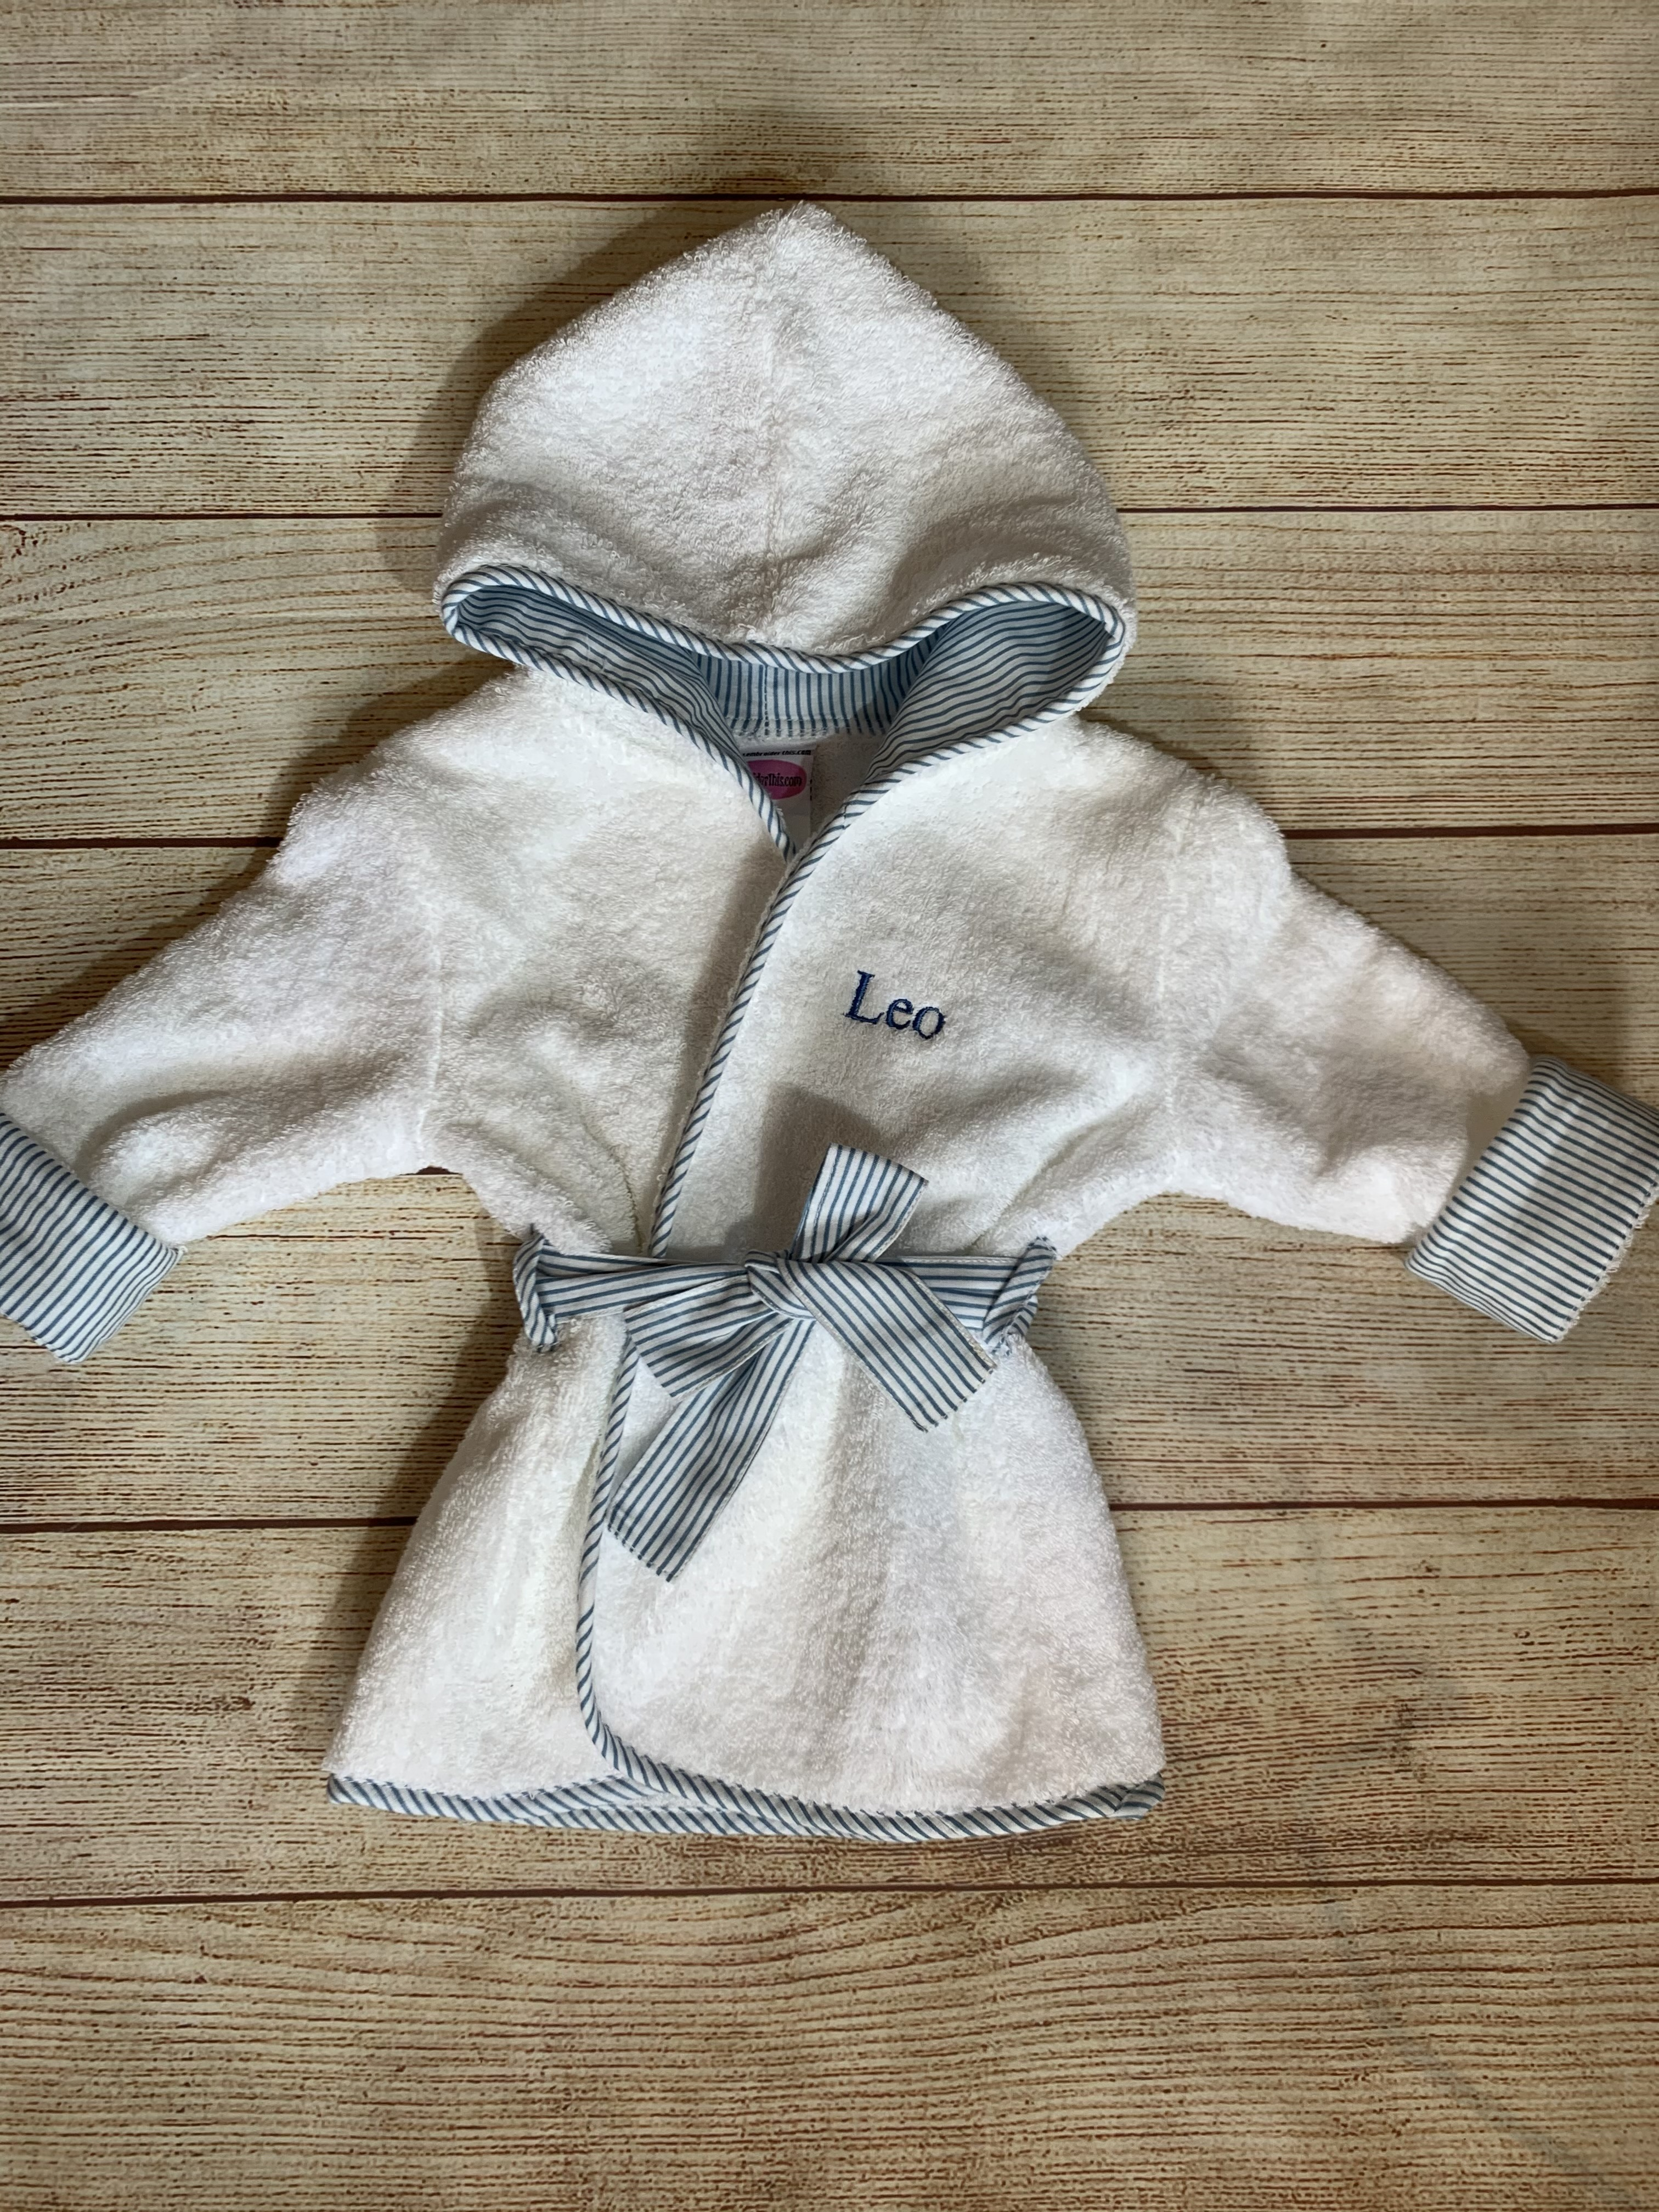 Wrap him up in a blue Trim Baby Robe by Wicked Stitches Gifts.